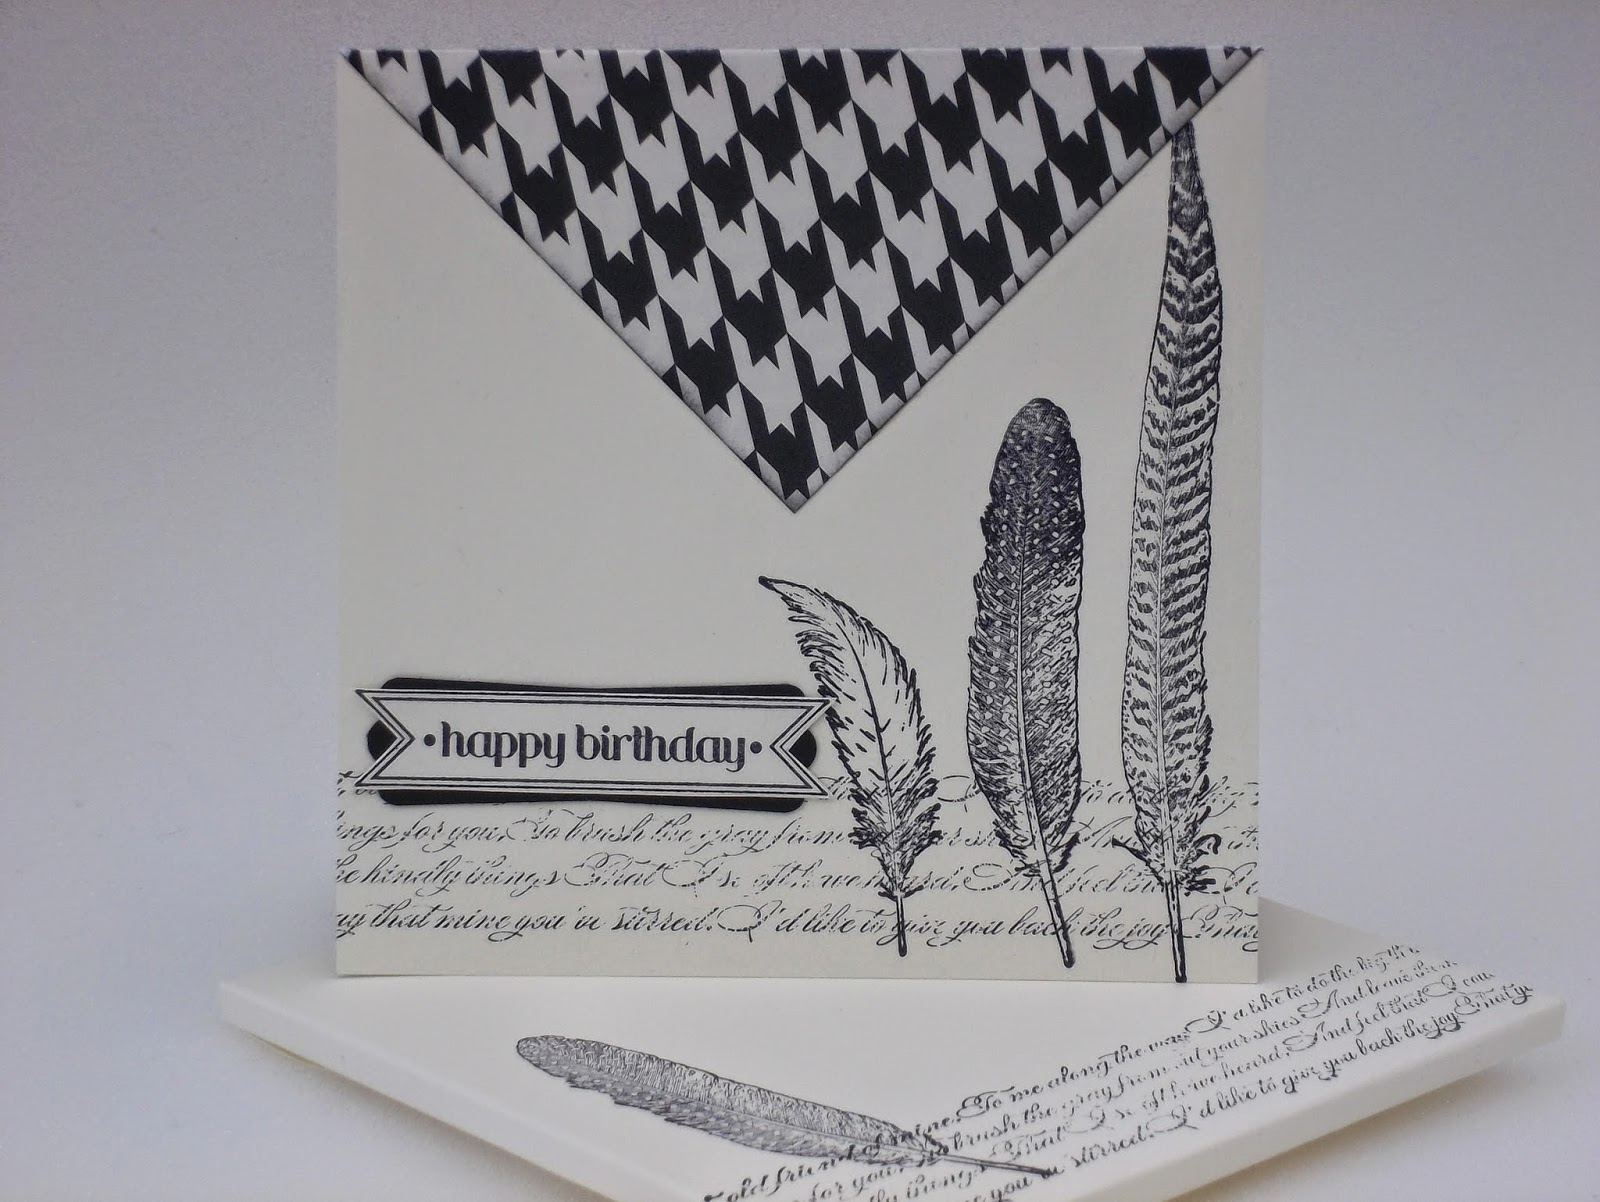 Fine Feathers gift card holder